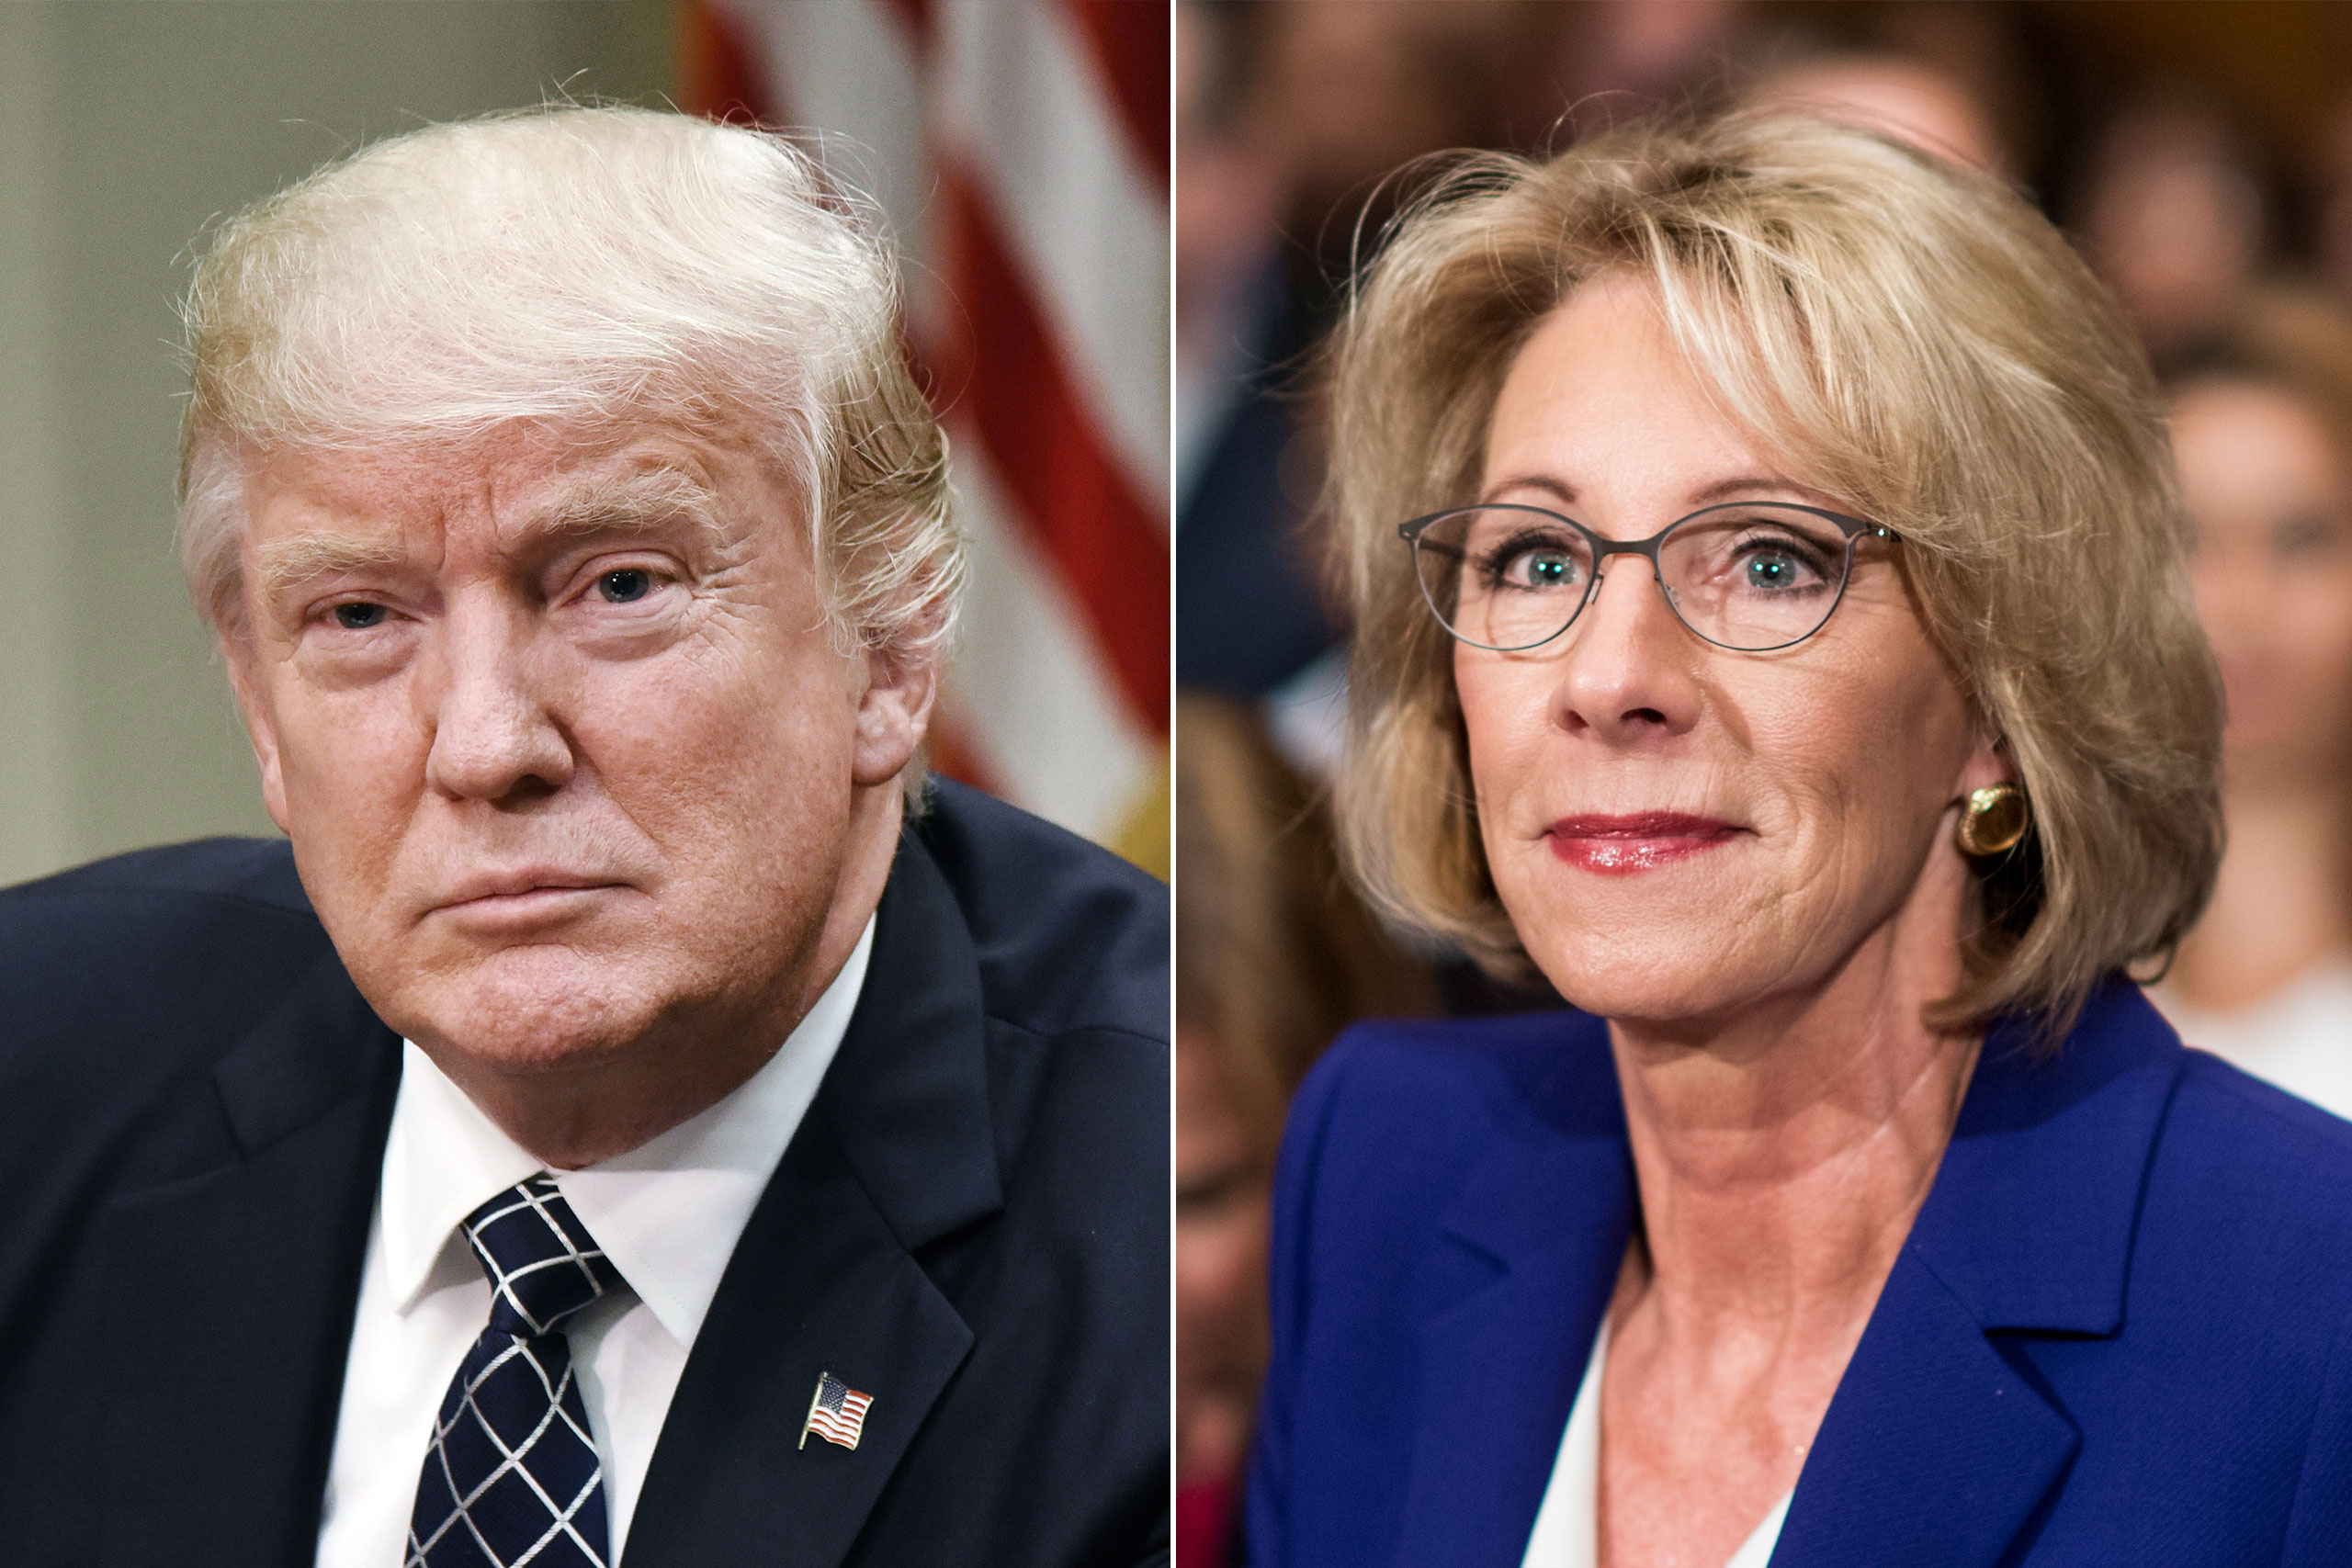 Donald Trump in Washington, DC, on April 25, 2017 (L); Betsy DeVos in Washington, DC, on Jan. 17, 2017.